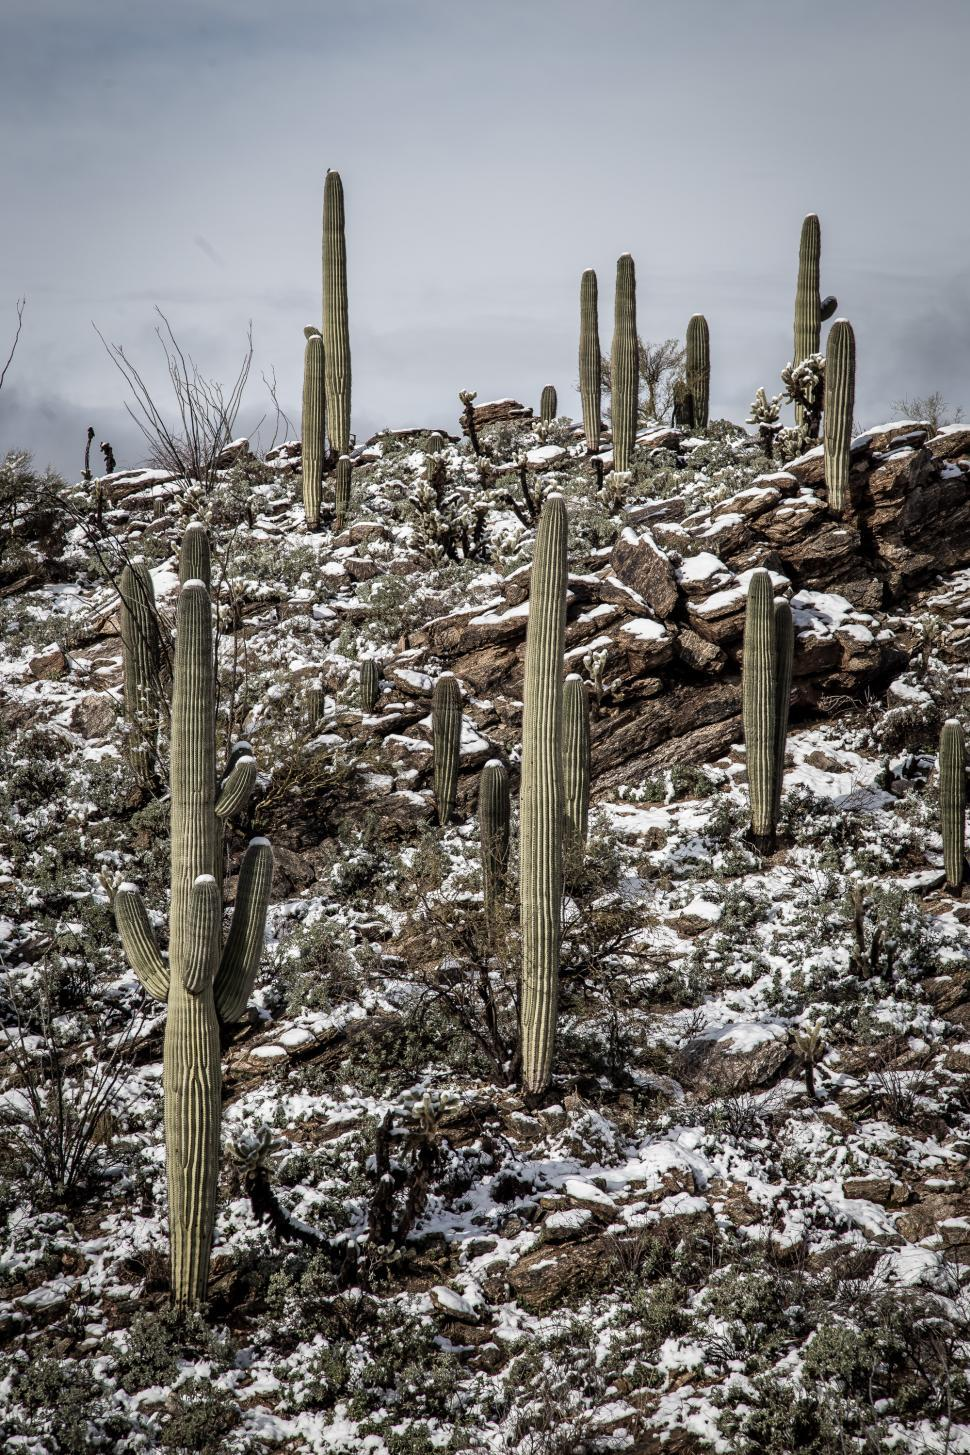 Download Free Stock Photo of Cactus and Rocks in the Desert After Snow